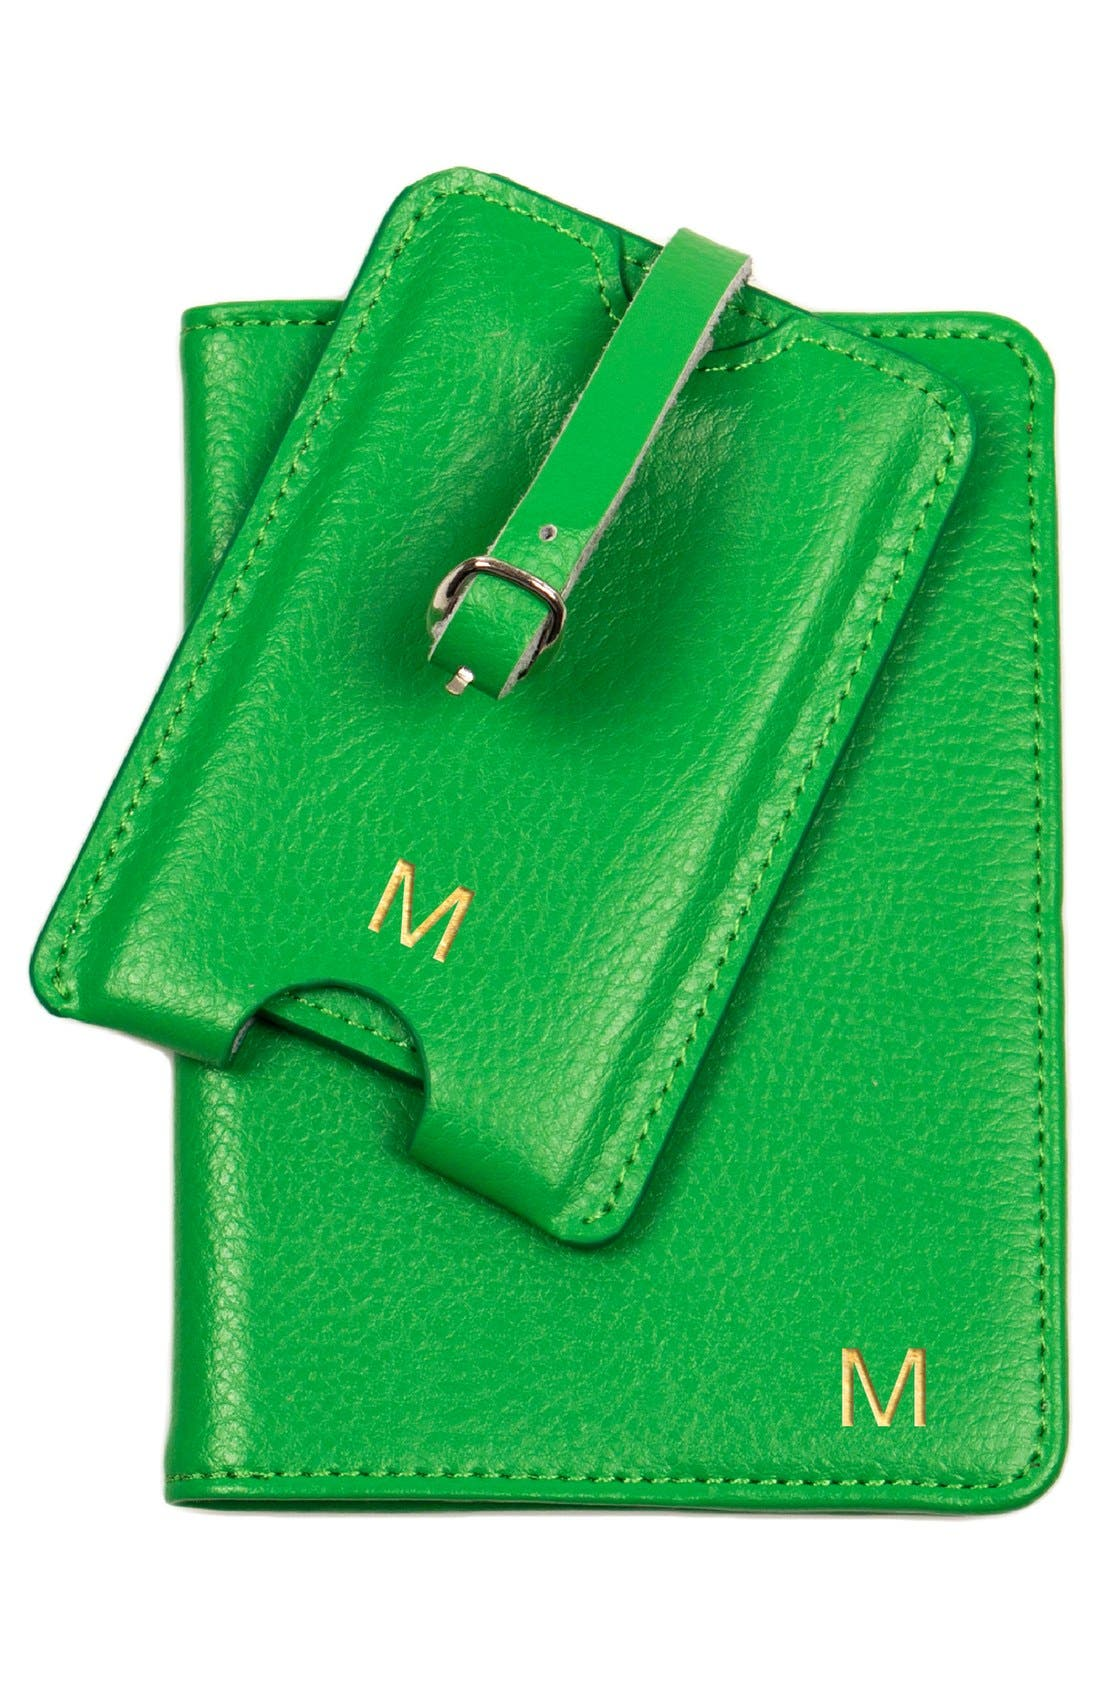 CATHY'S CONCEPTS,                             Monogram Passport Case & Luggage Tag,                             Alternate thumbnail 3, color,                             200